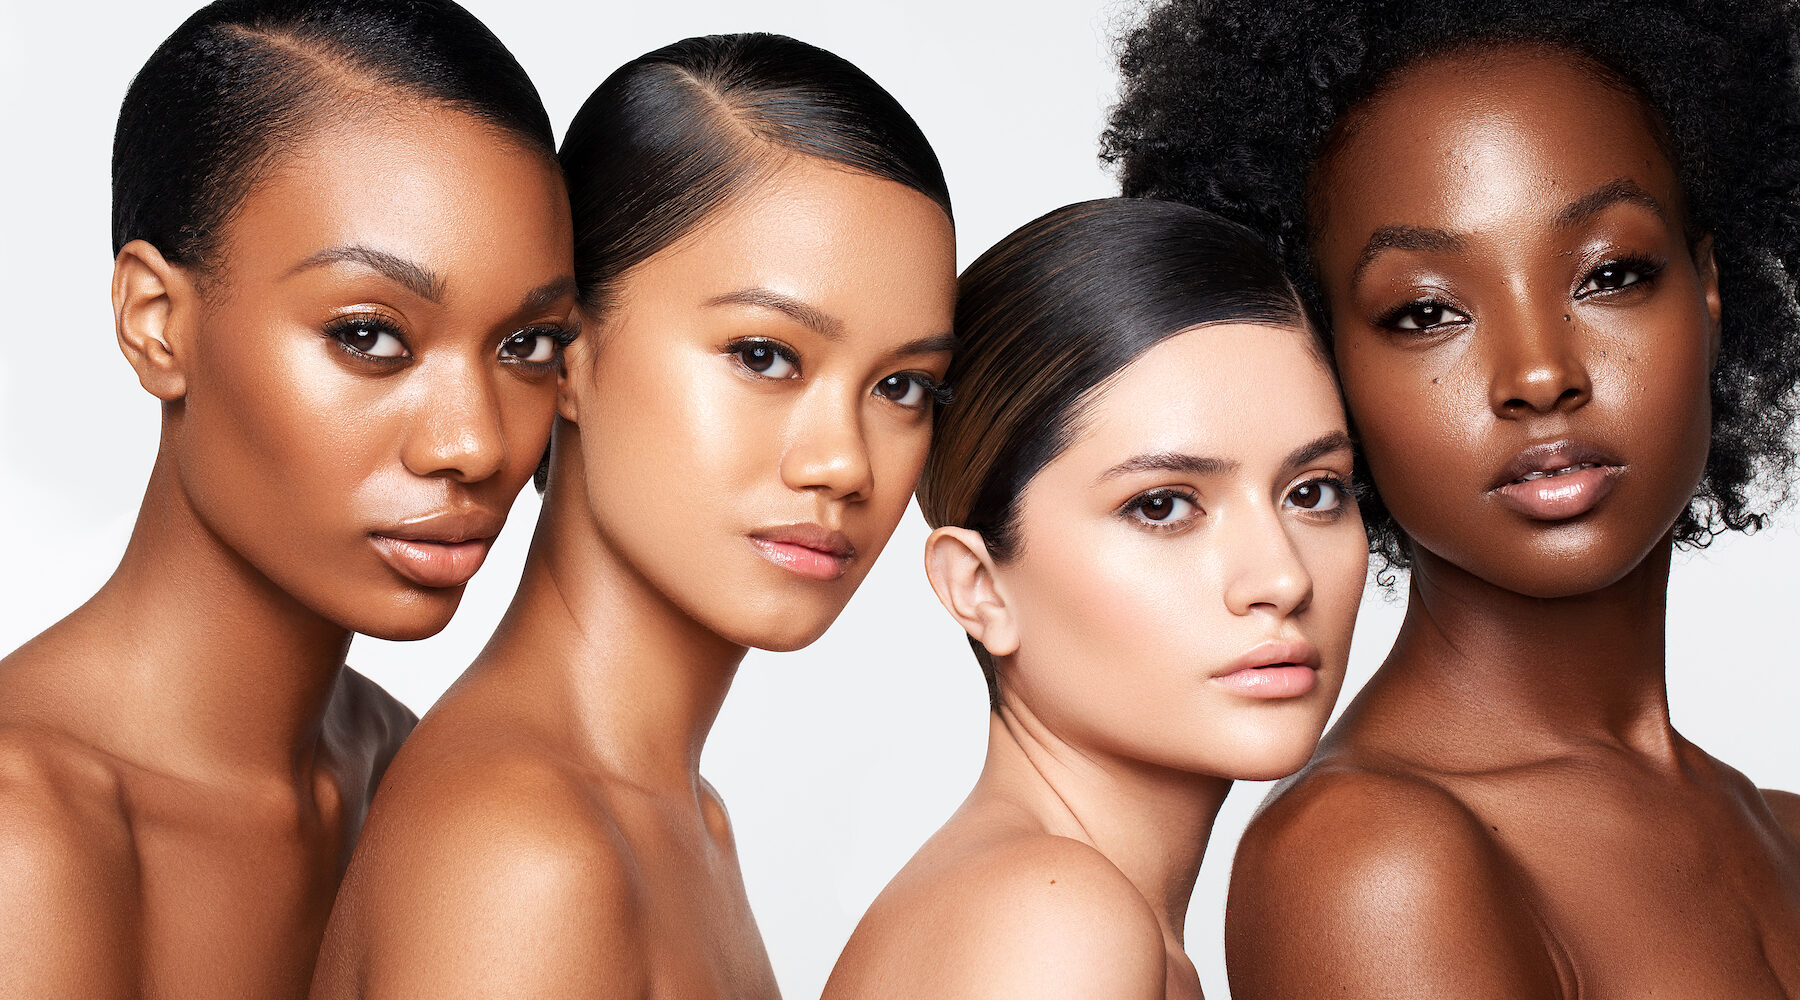 VI Peel Creator Vitality Institute Launches The Brown Skin Agenda To Increase Awareness Of And Education On Treating Skin Of Color